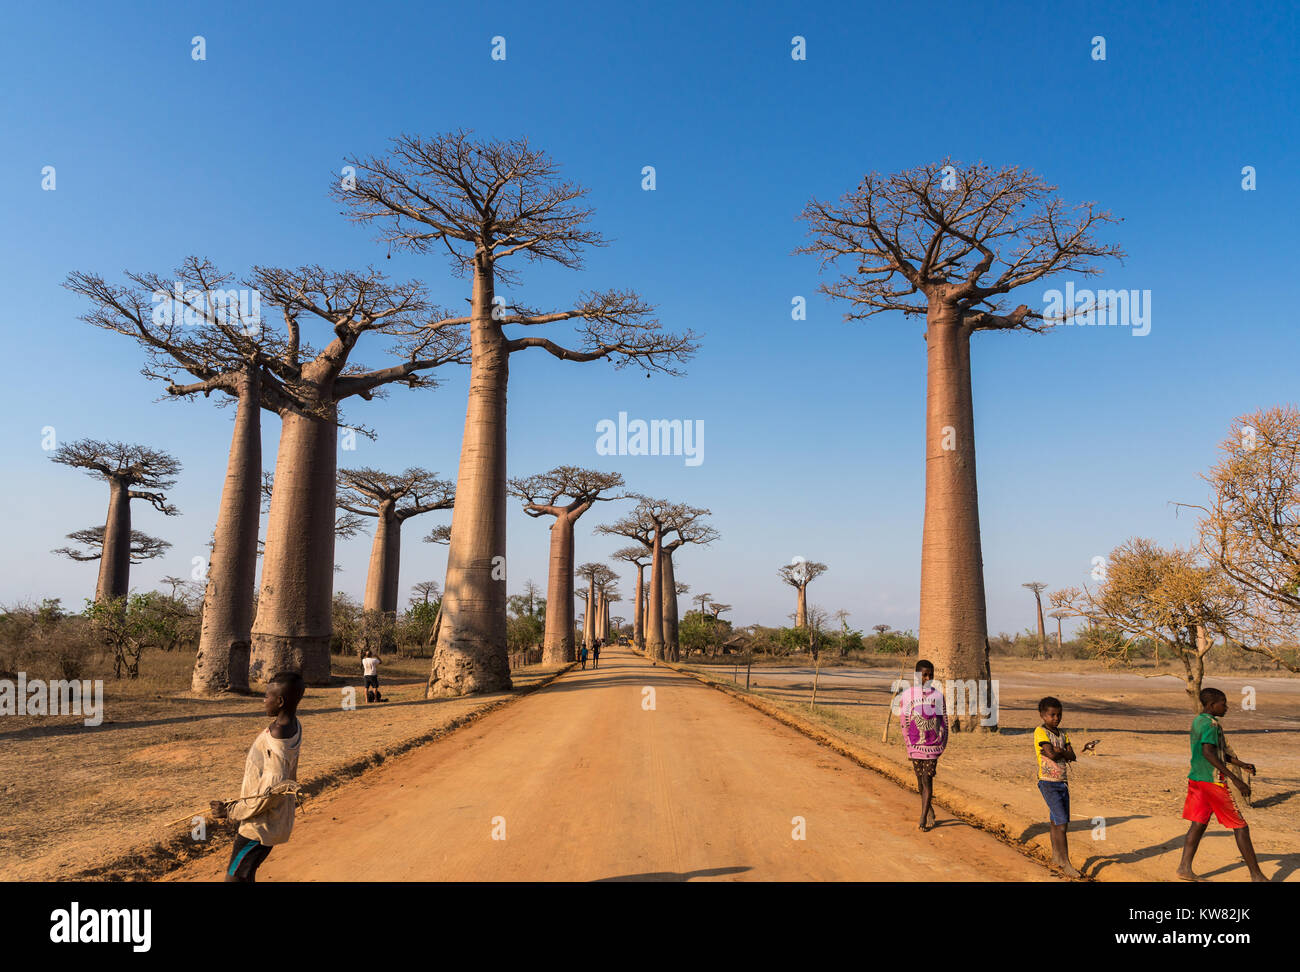 Local kids interact with tourists along the Avenue of Baobabs. Madagascar, Africa. - Stock Image